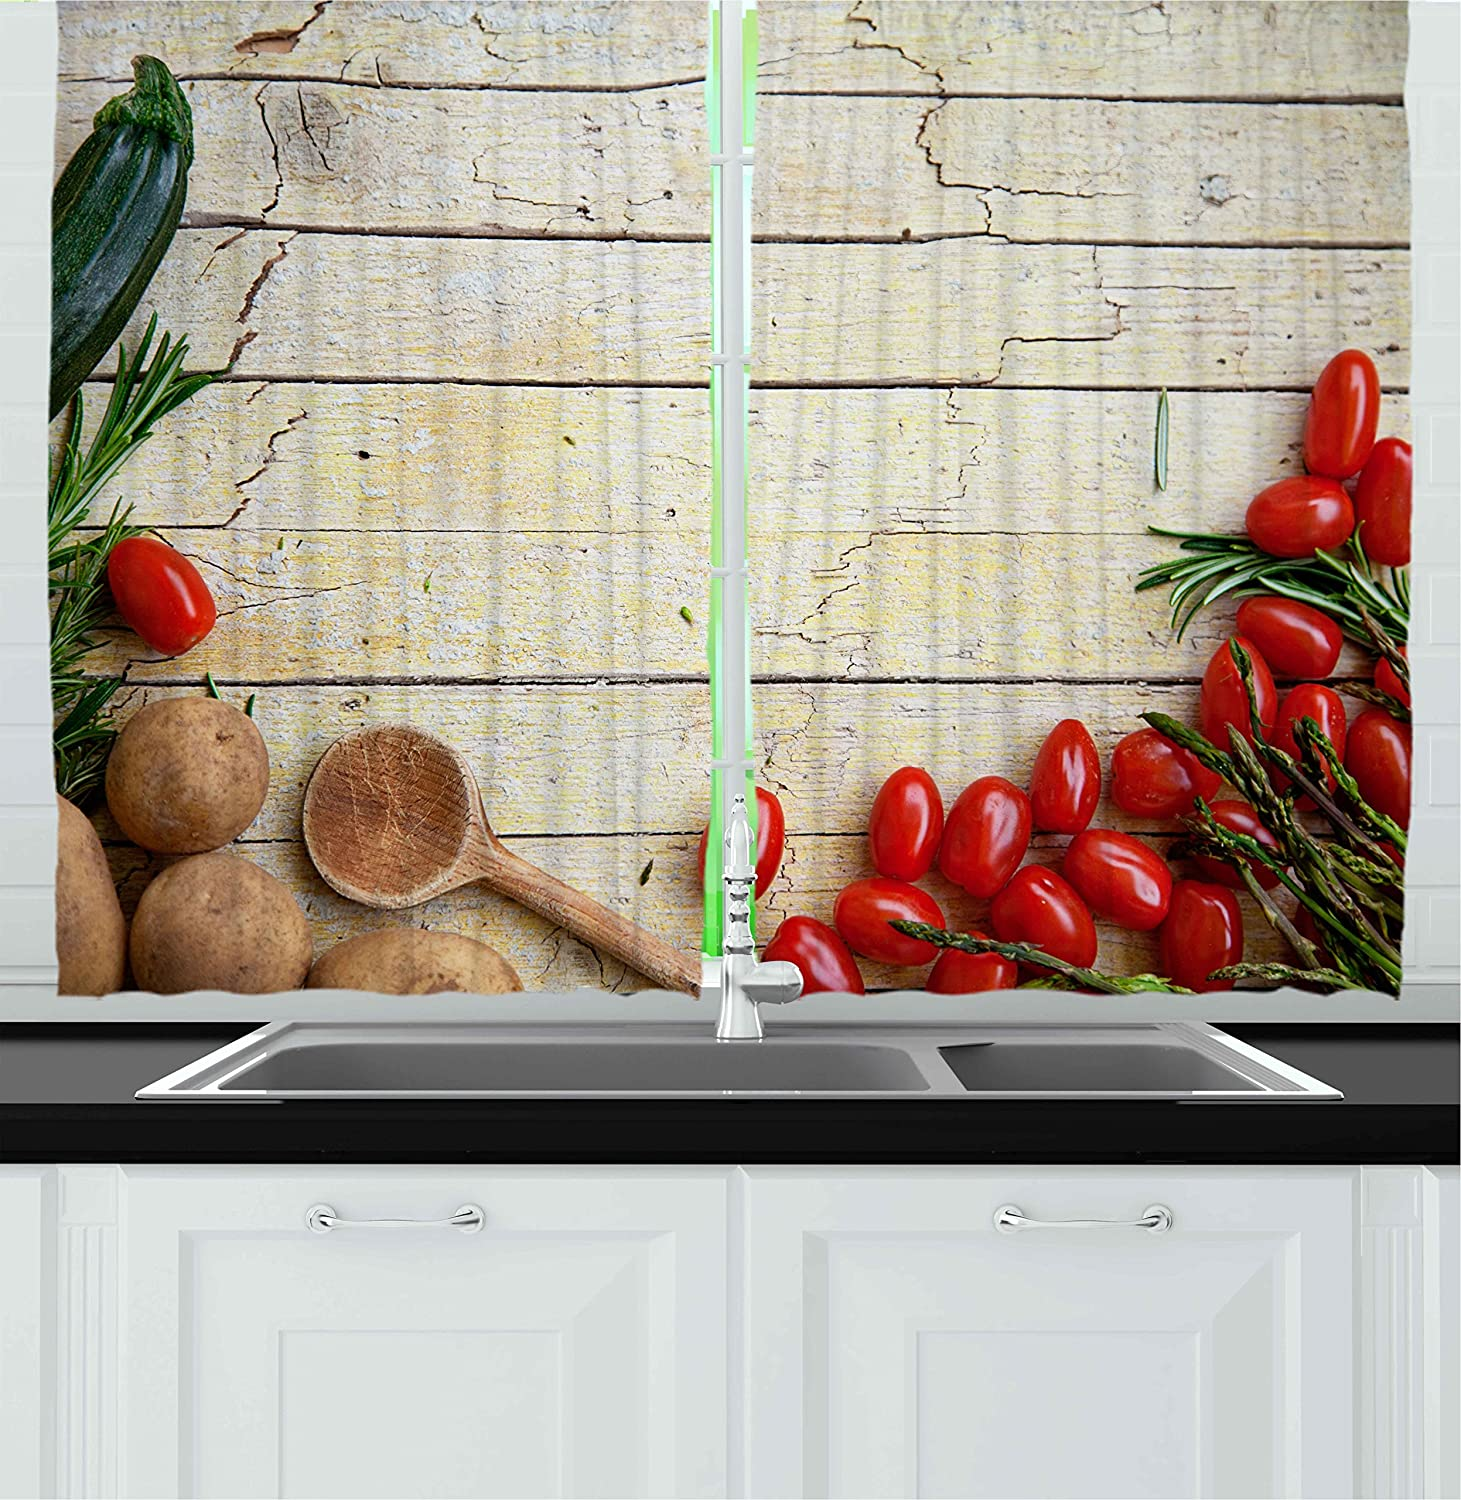 Amazon.com: Ambesonne Kitchen Decor Collection, Cooking Vegetables ...